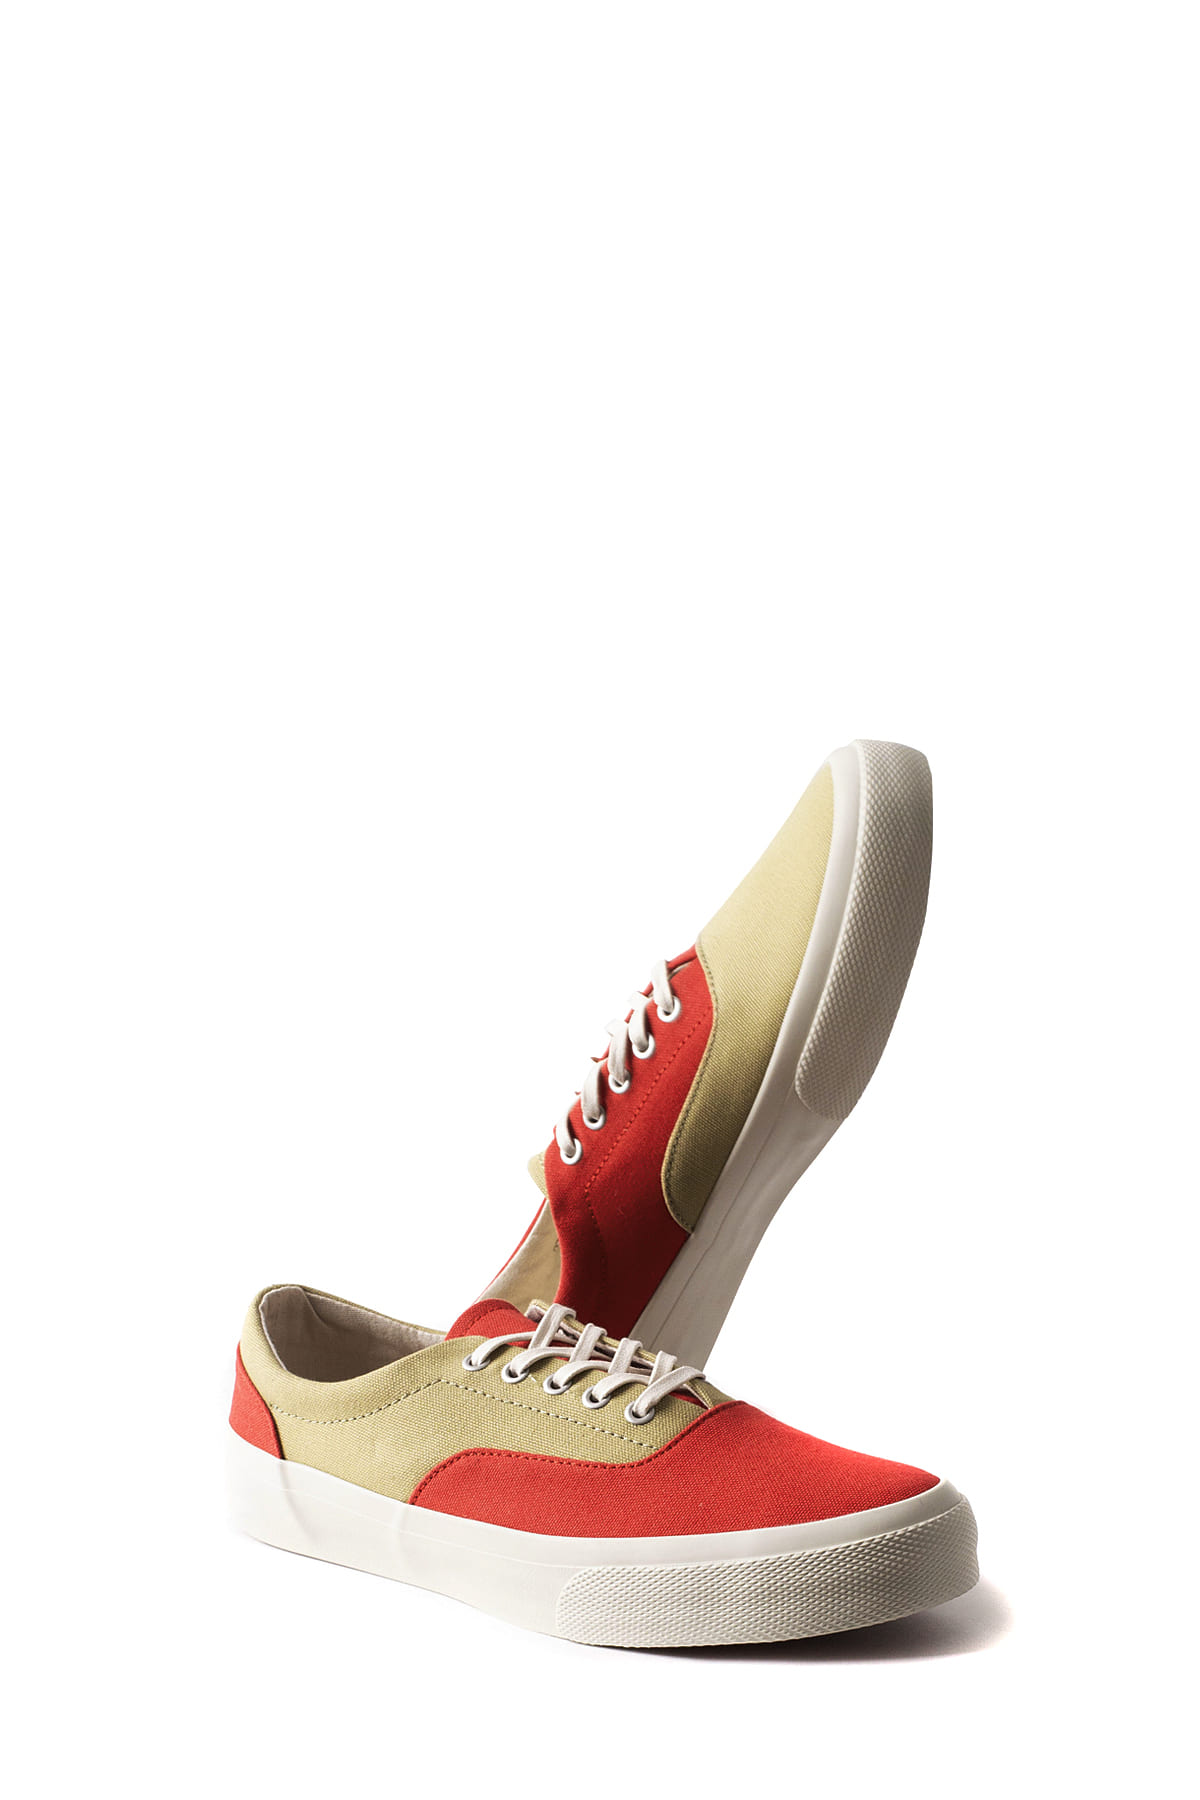 YMC : 2Tone Trainer (Red)